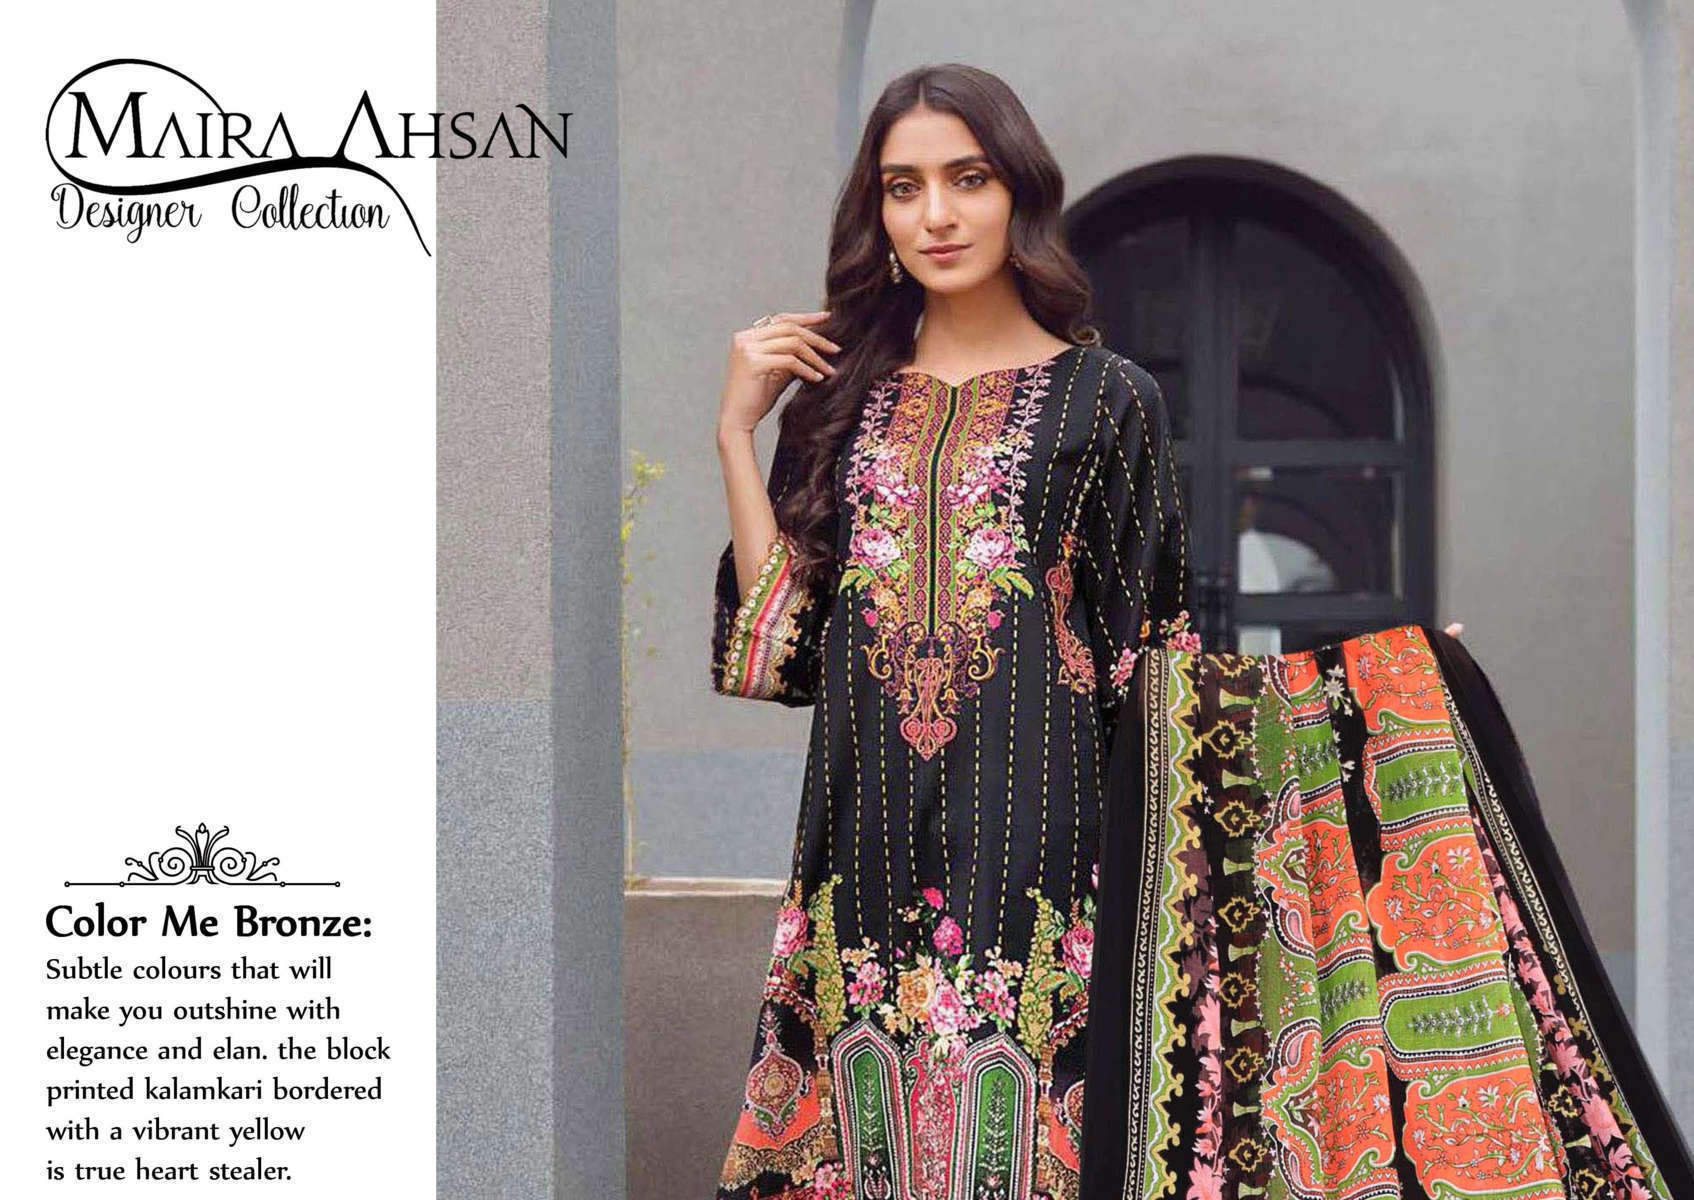 Maira Ahsan Designer Collection Vol 1 Salwar Suit Wholesale Catalog 10 Pcs 1 - Maira Ahsan Designer Collection Vol 1 Salwar Suit Wholesale Catalog 10 Pcs